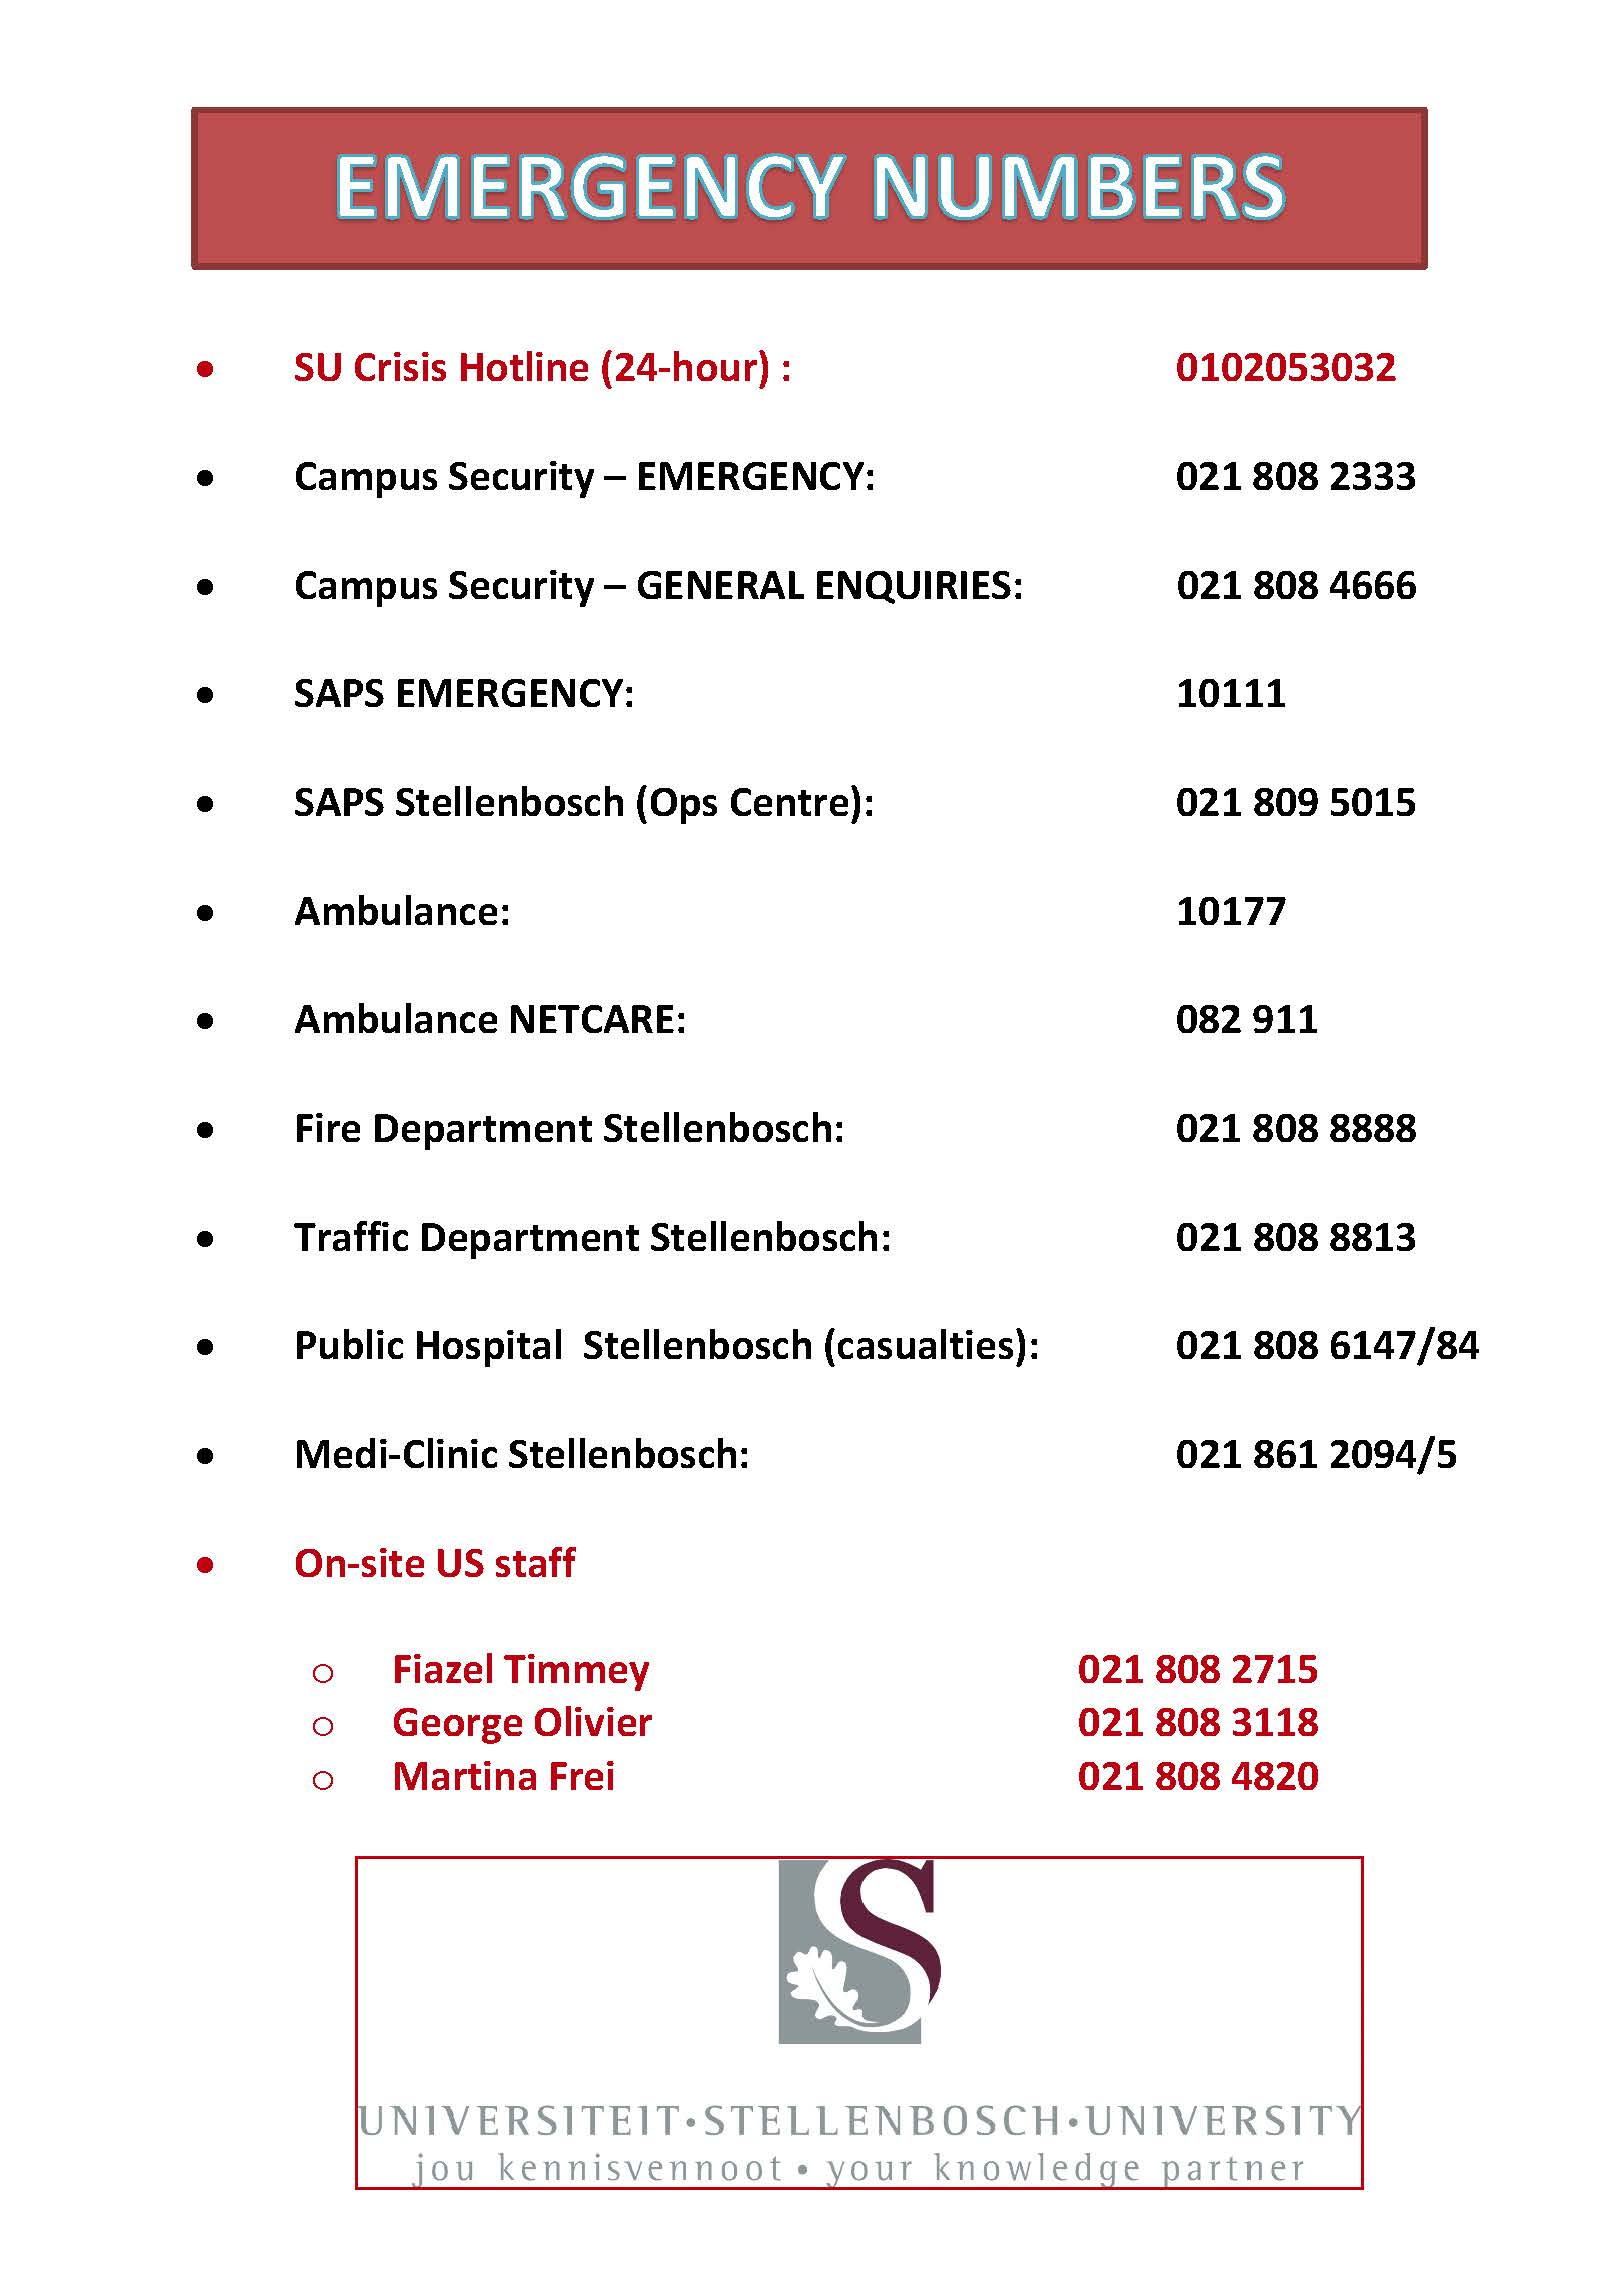 emergency phone numbers-small.jpg